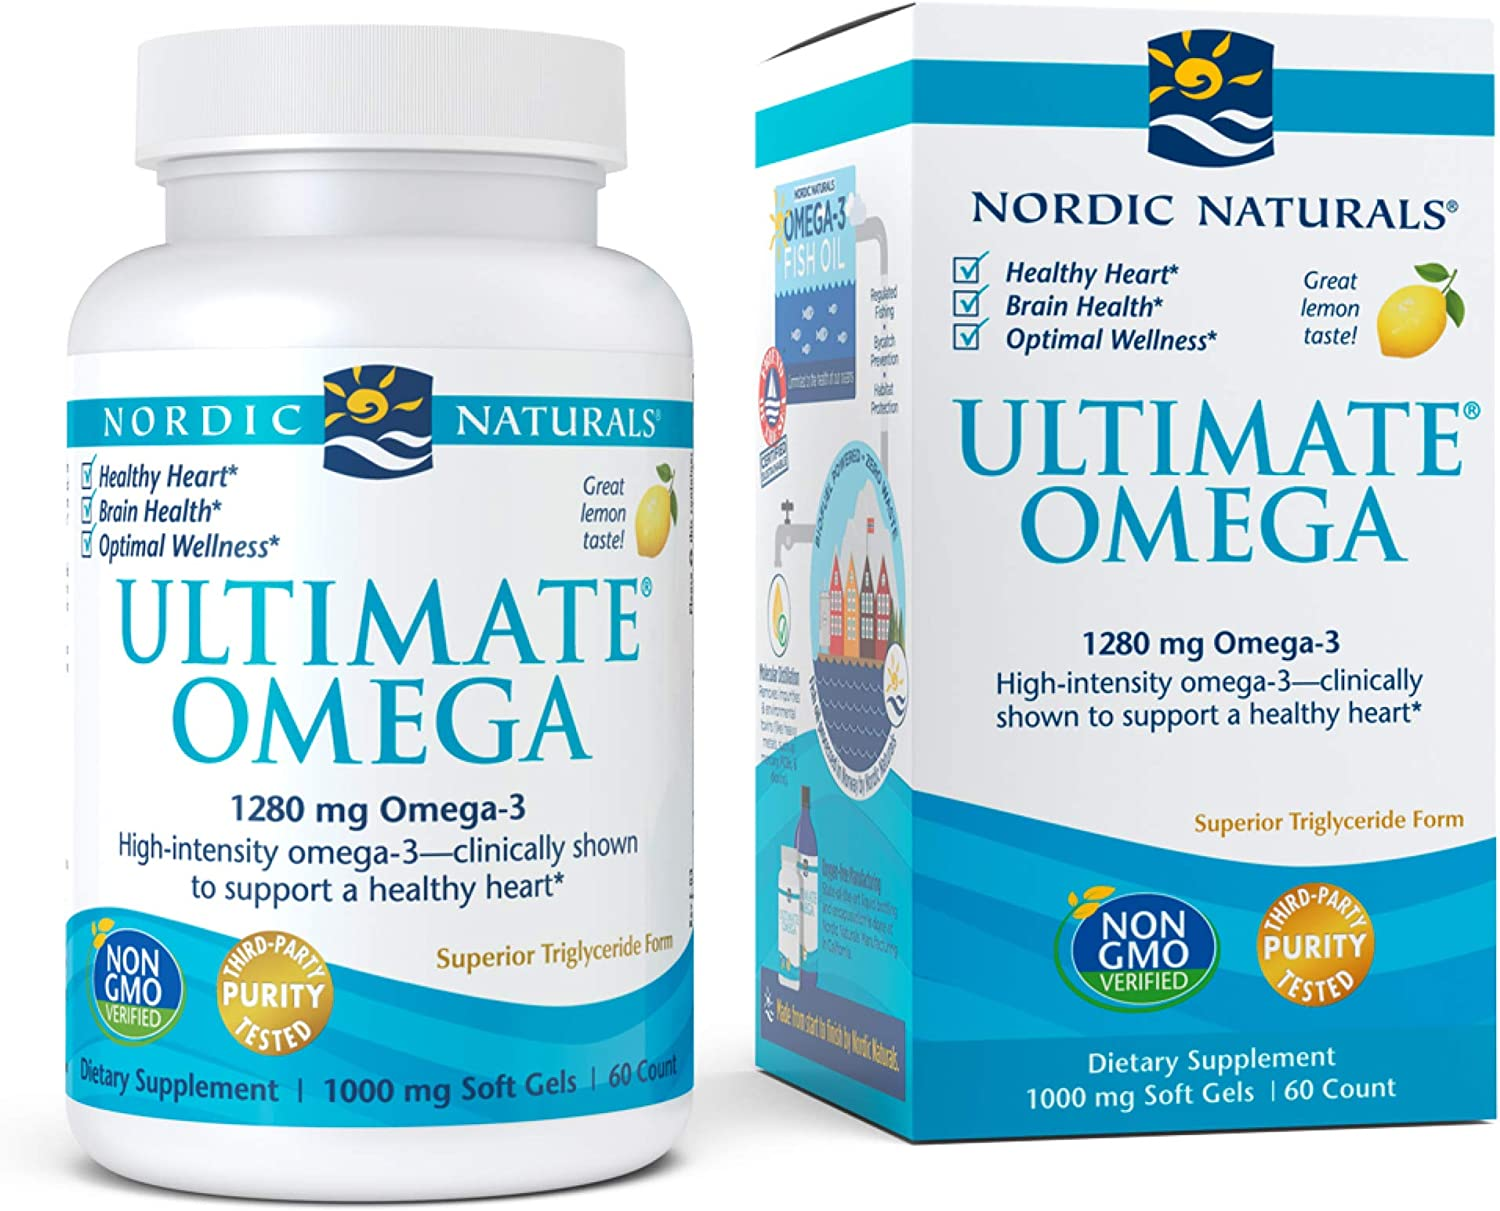 Nordic Naturals, Ultimate Omega, Fish Oil Supplement with Omega-3 DHA and EPA, Supports Heart Health and Brain Development, Burpless Lemon Flavor, (30 servings) 60 soft gels